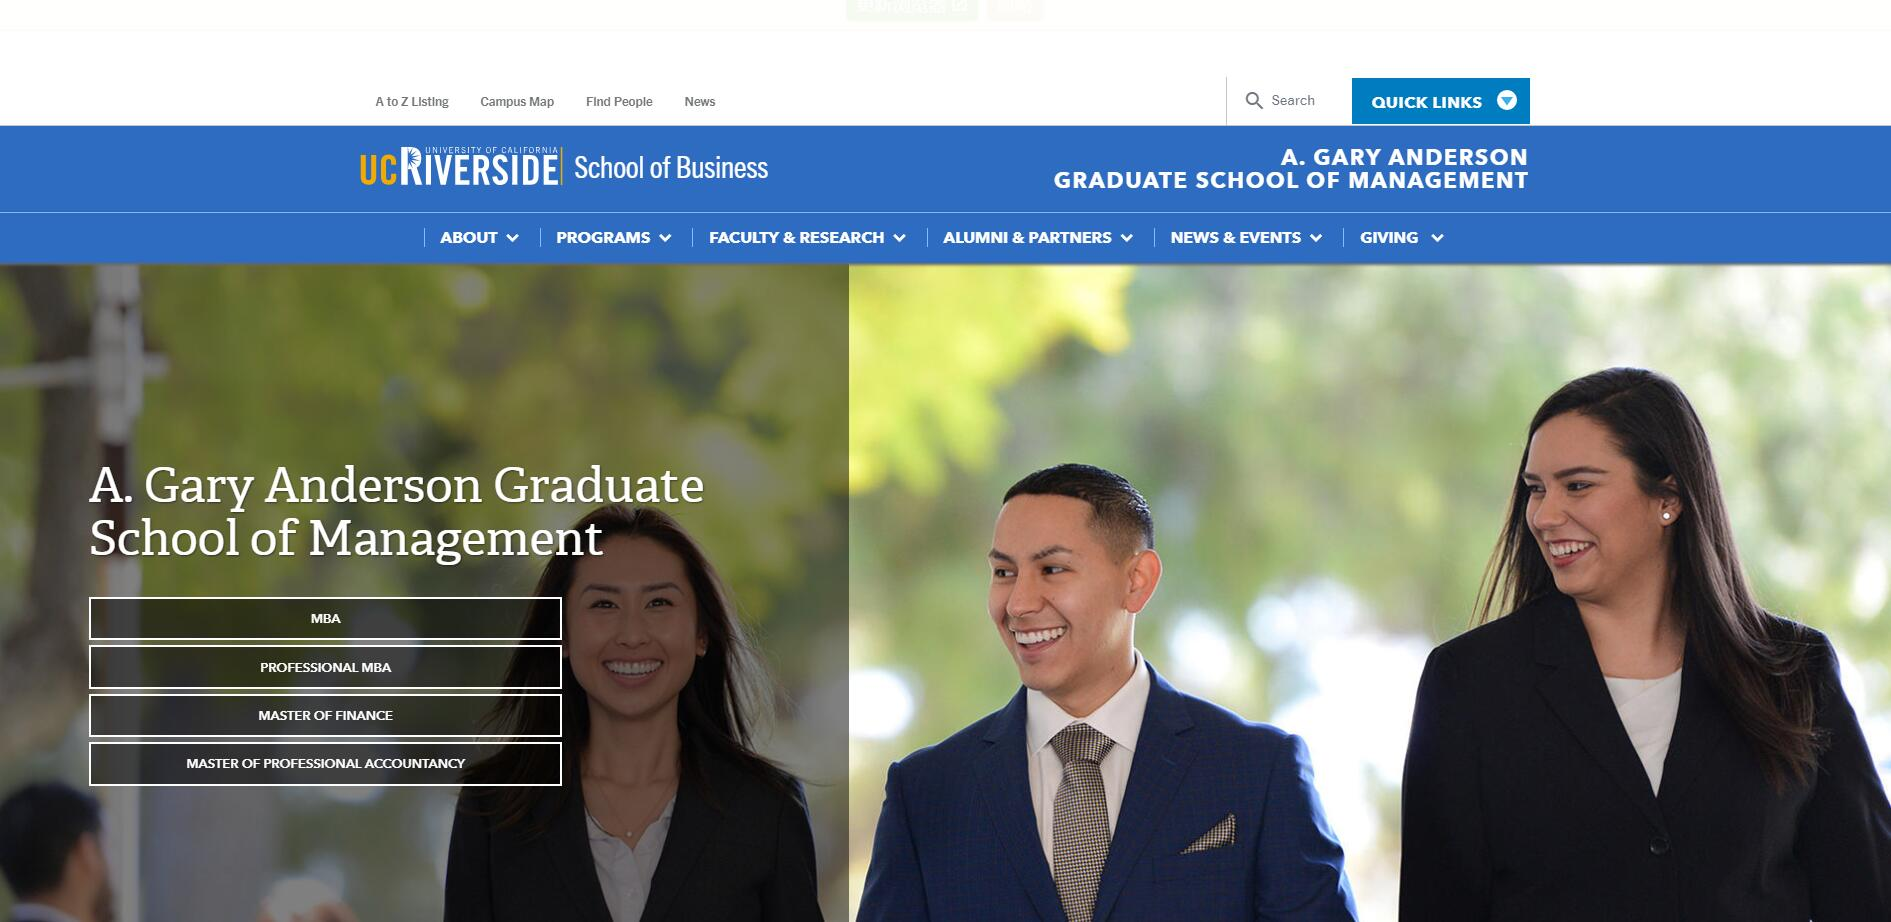 The A. Gary Anderson Graduate School of Management at University of California–Riverside